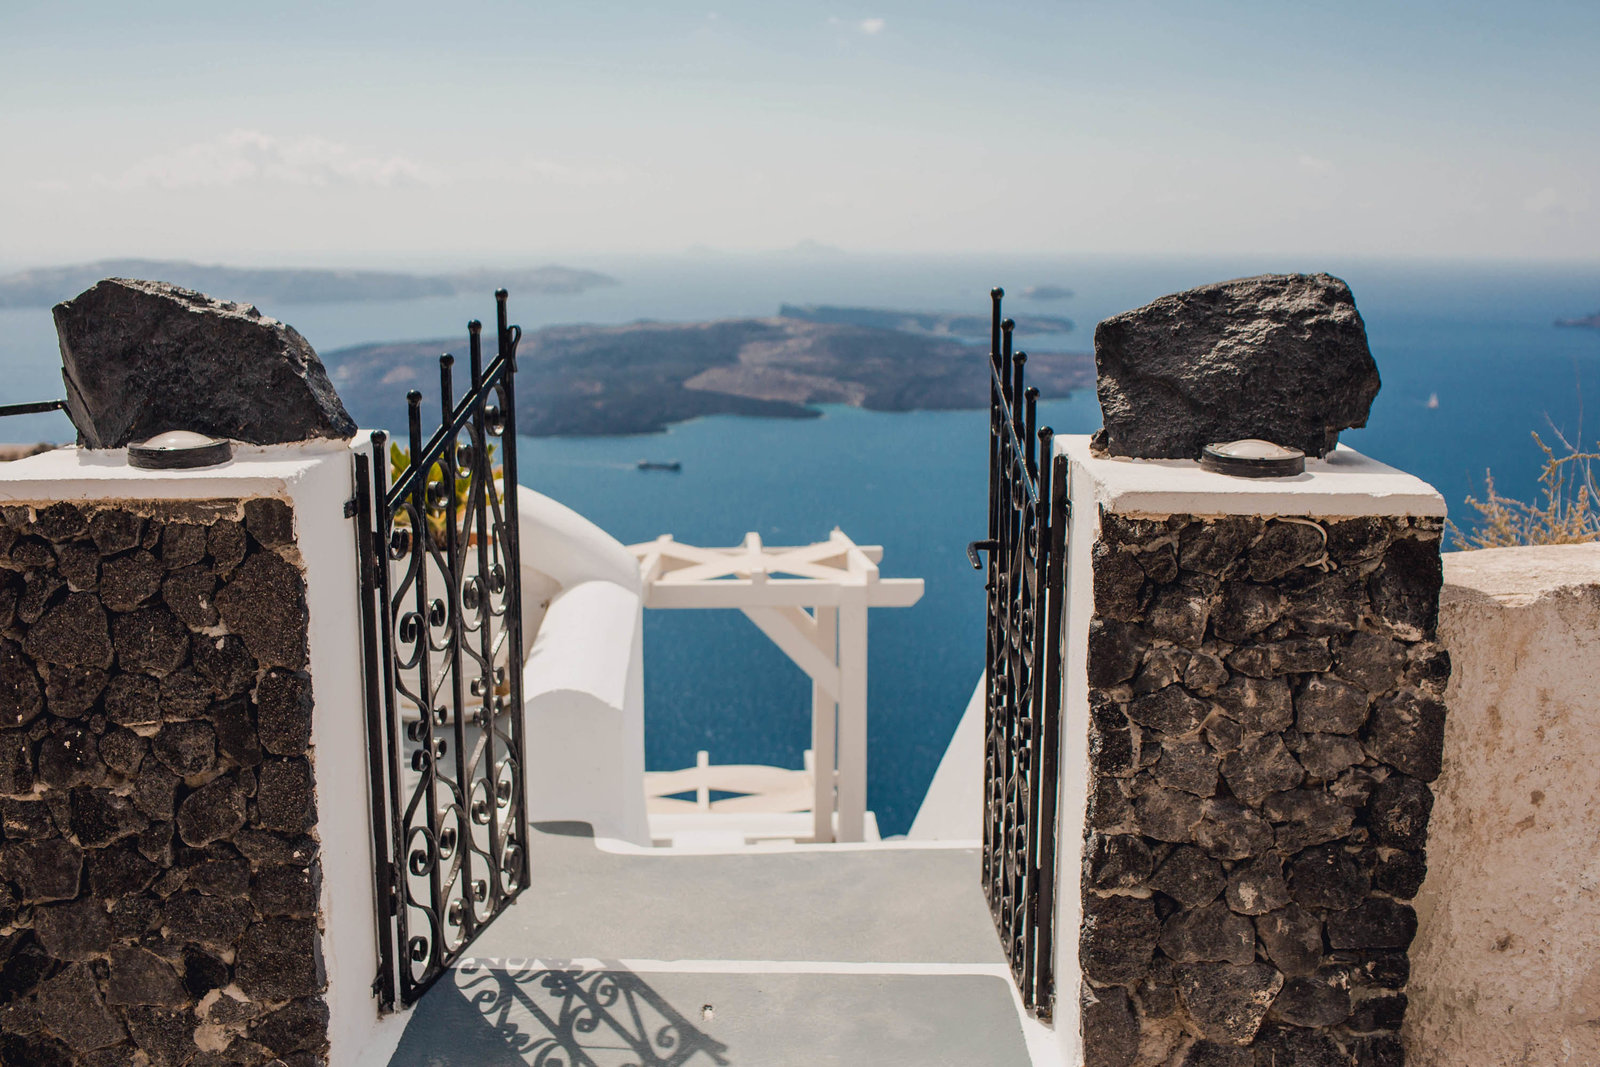 gate-ocean-destination-travel-santorini-wedding-kate-timbers-photo-2518